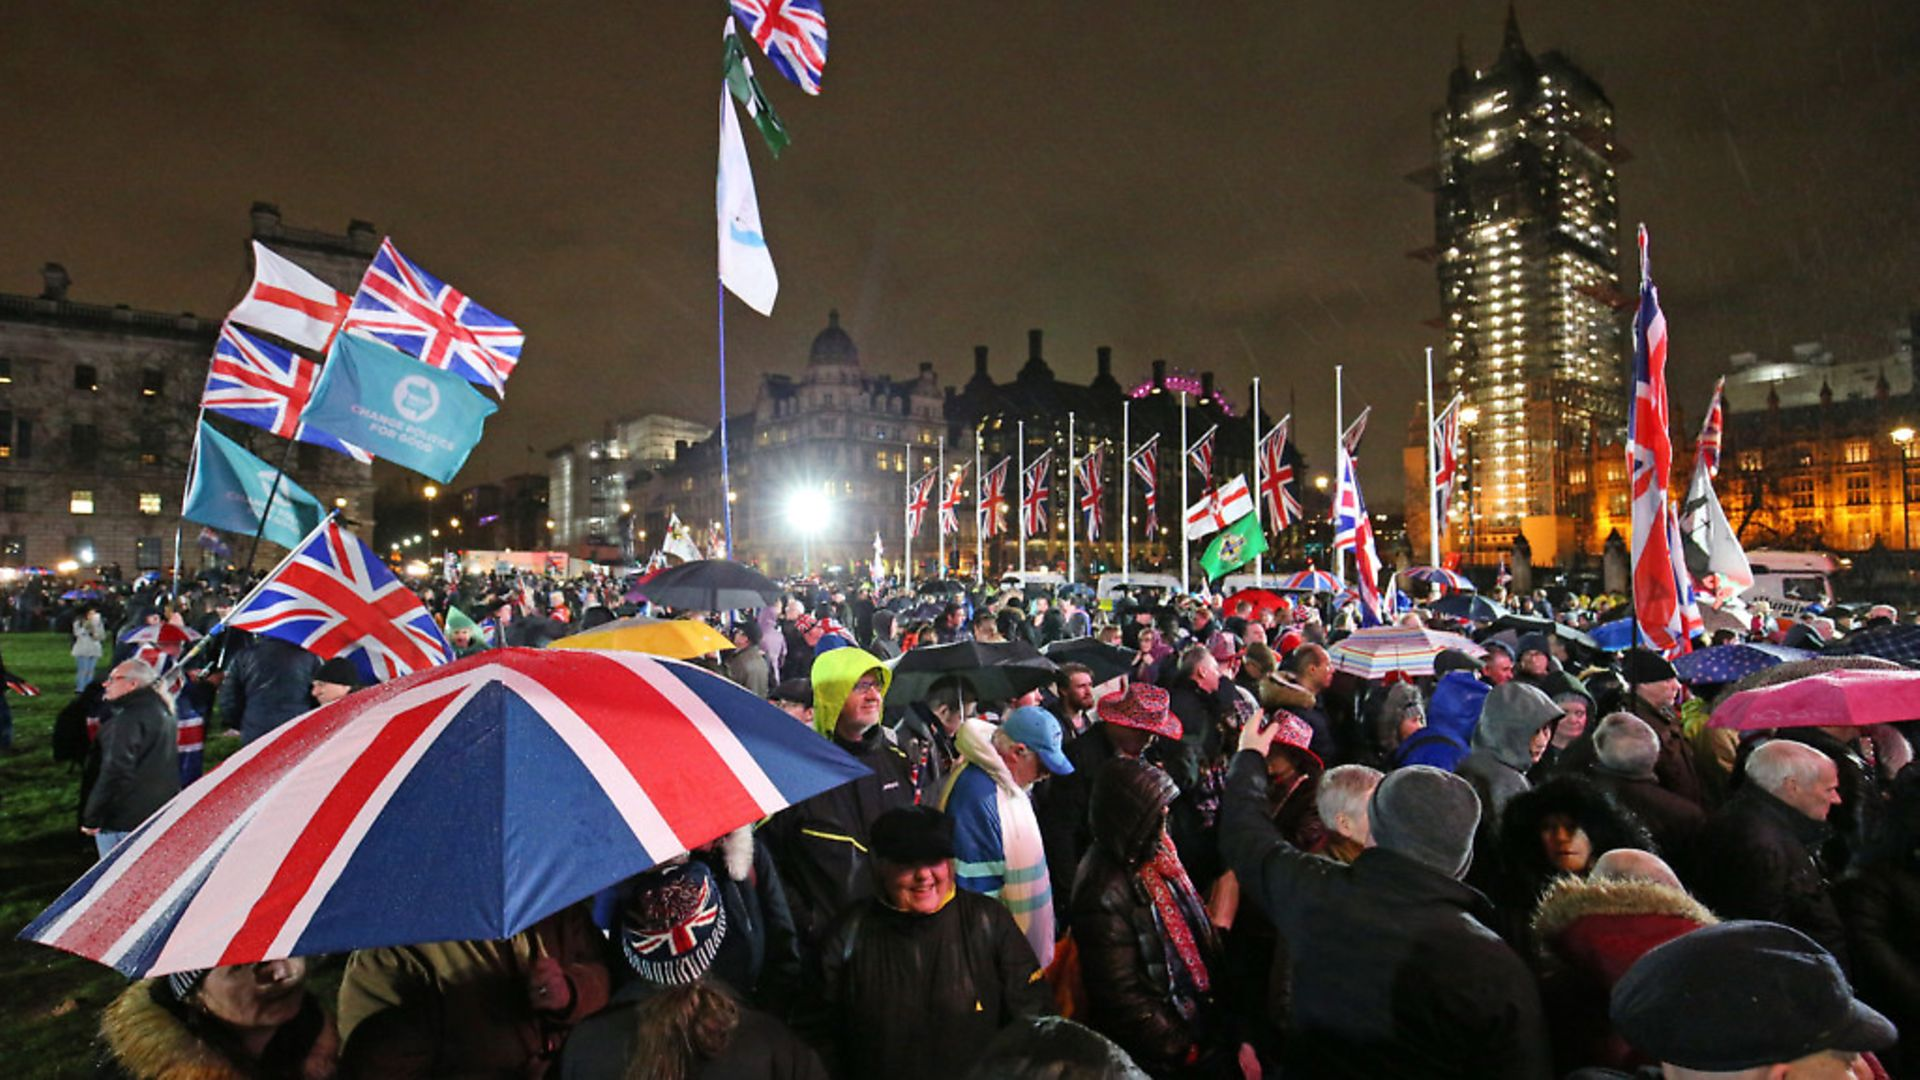 Pro-Brexit supporters in Parliament Square as the UK leaves the European Union. Photograph: Jonathan Brady/PA. - Credit: PA